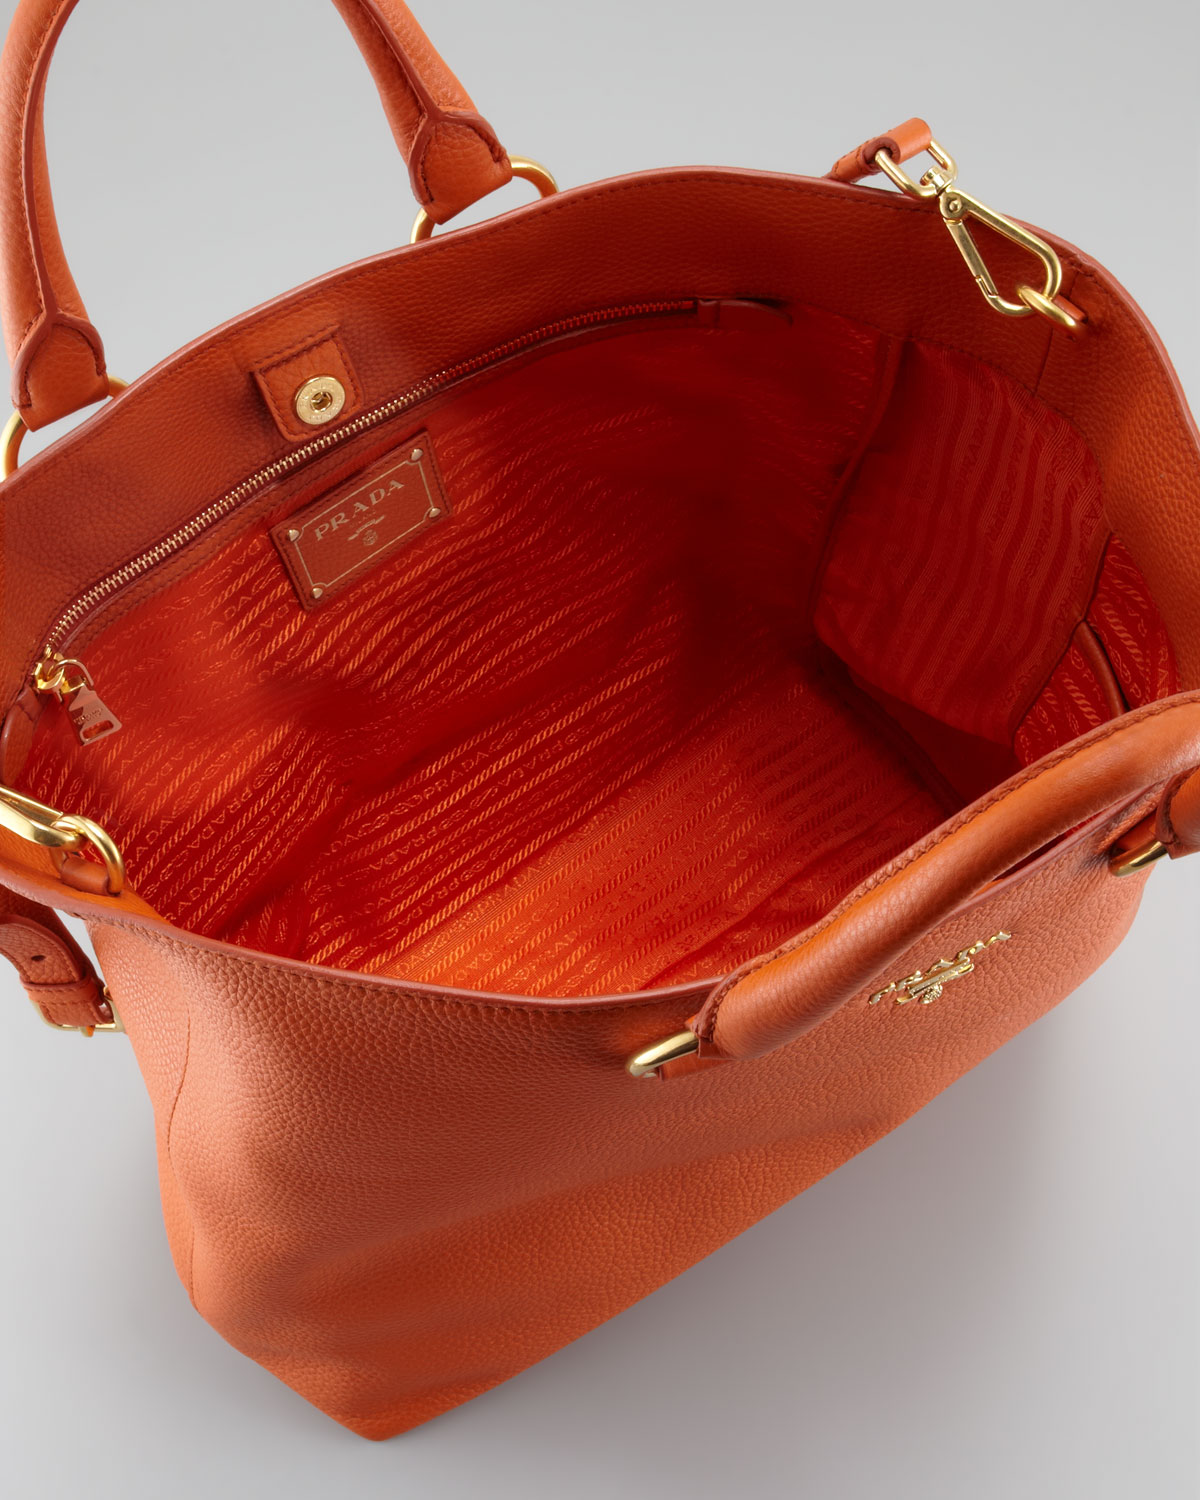 7b204ae85d77 Prada tote orange